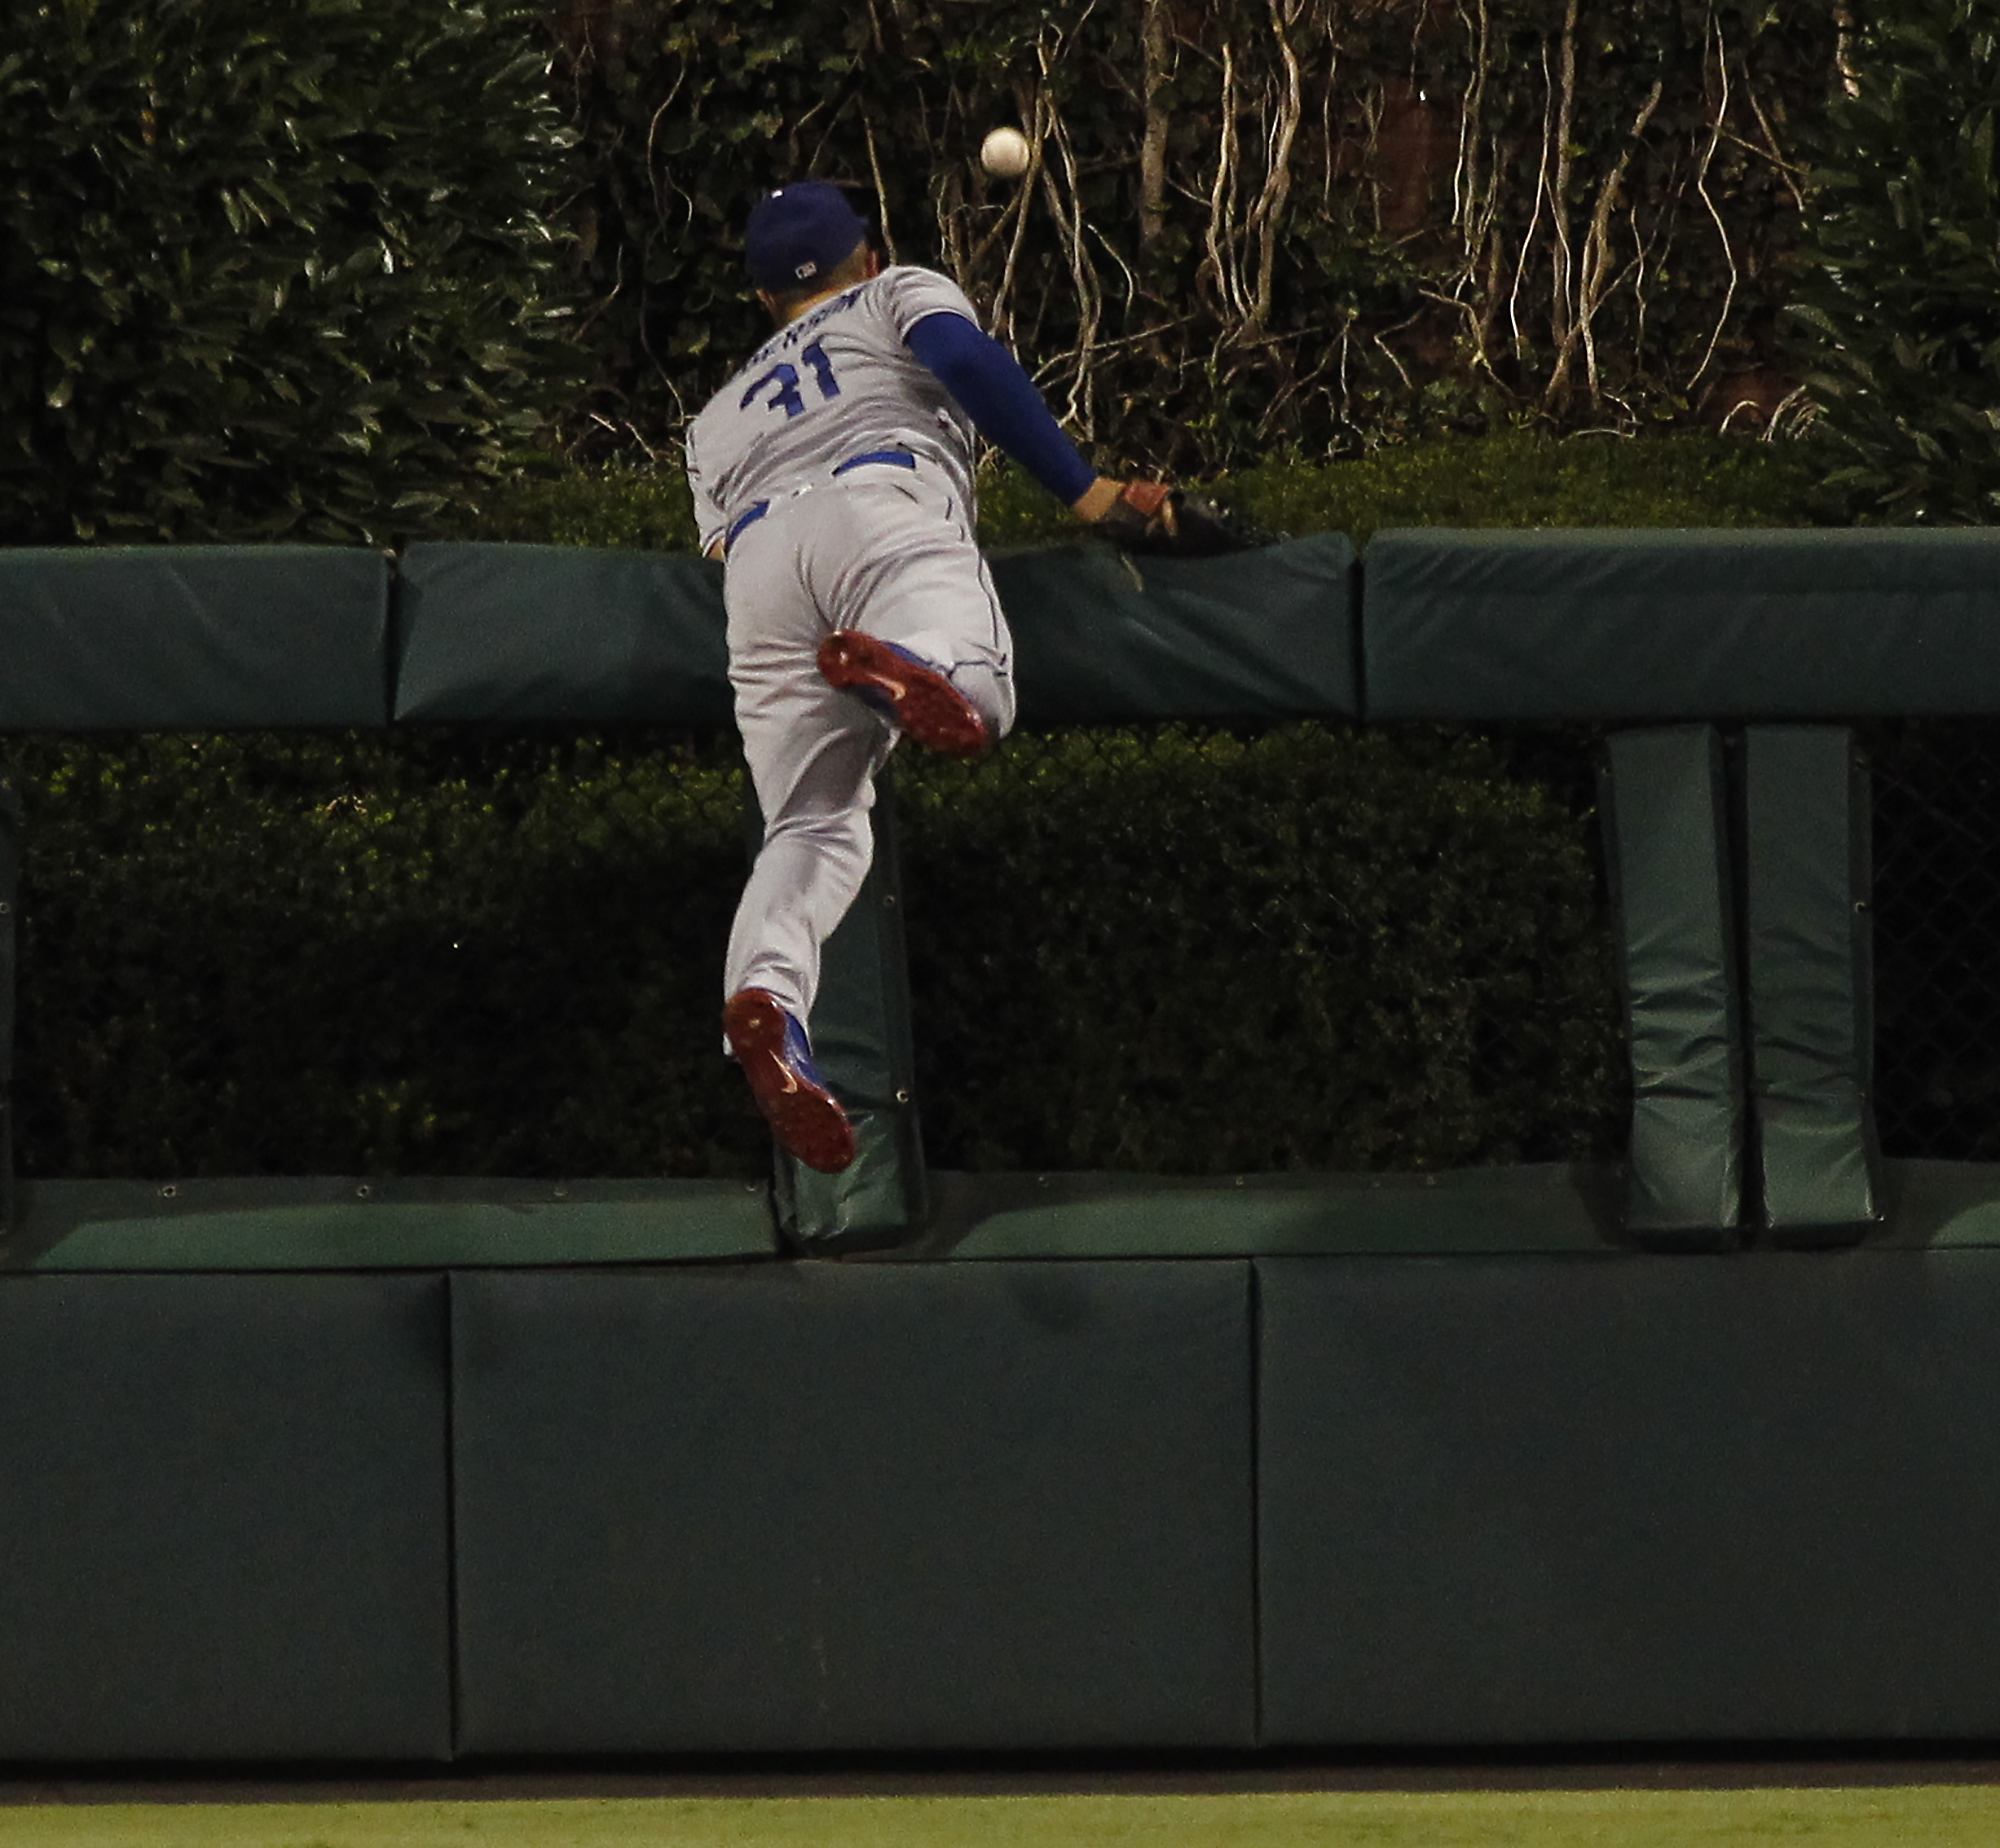 Los Angeles Dodgers' Joc Pederson leans over the fence in center field as a ball hit by Philadelphia Phillies' Maikel Franco for a two-run home run goes past during the seventh inning of a baseball game, Thursday, Aug. 18, 2016, in Philadelphia. (AP Photo